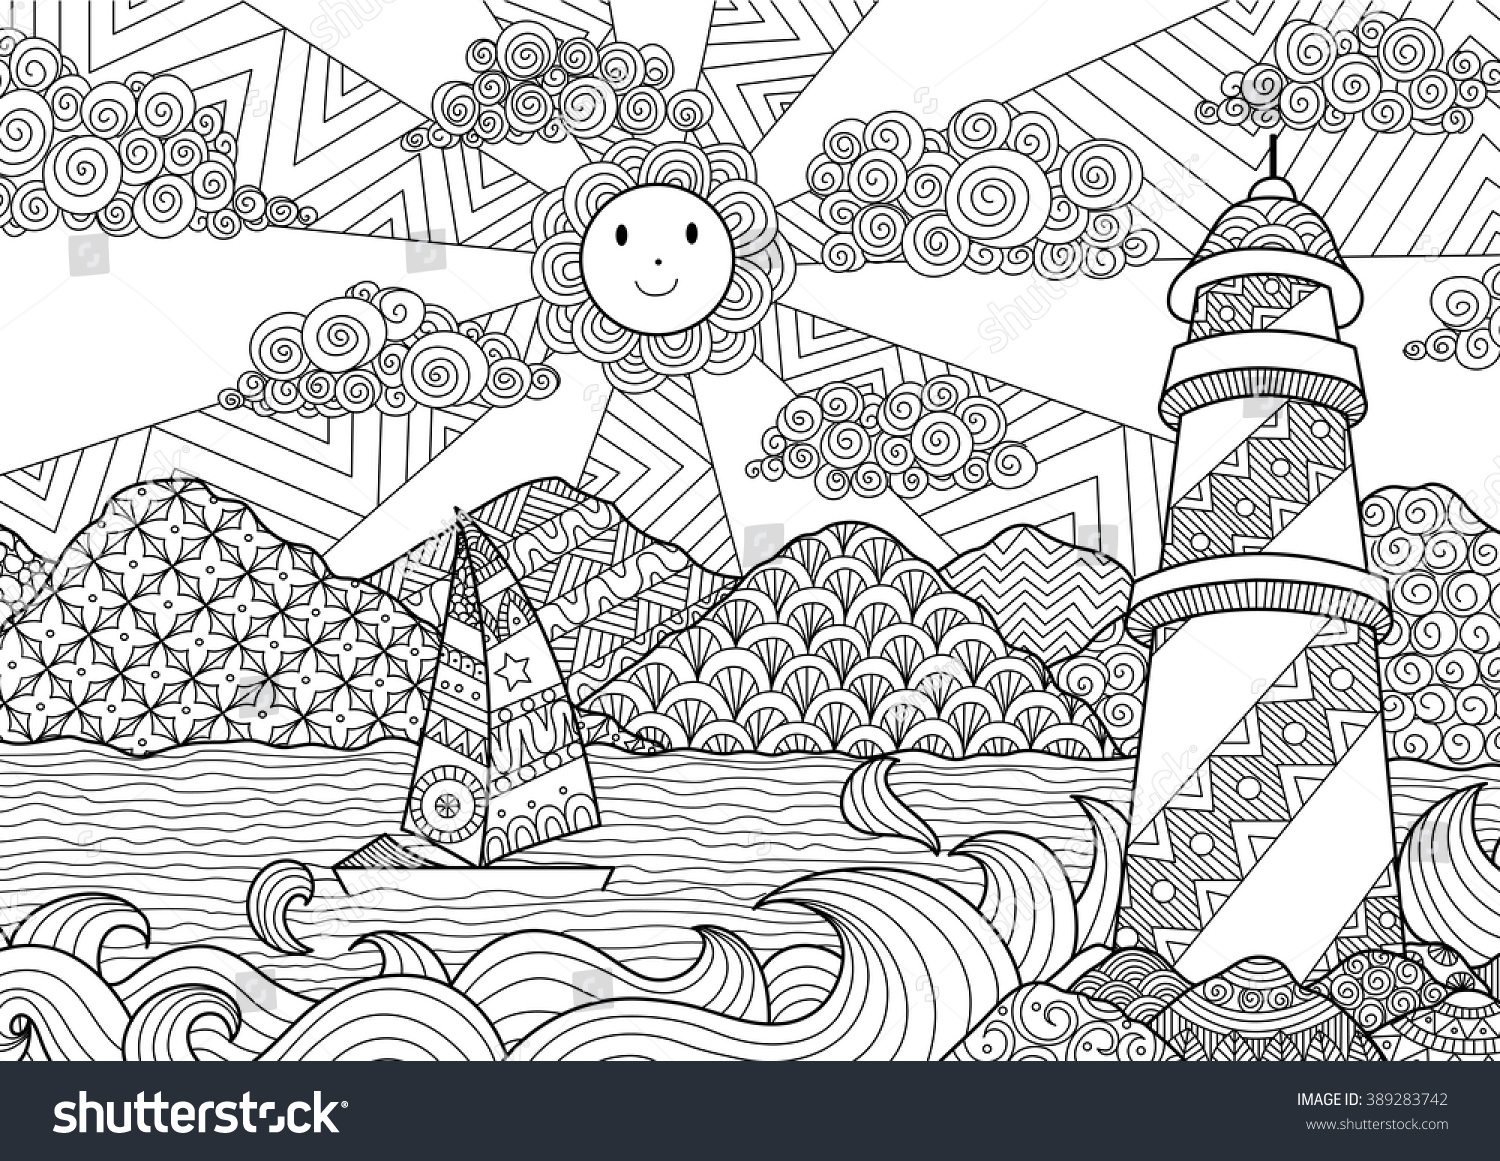 Seascape Line Art Design Coloring Book Stock Photo (Photo, Vector ...